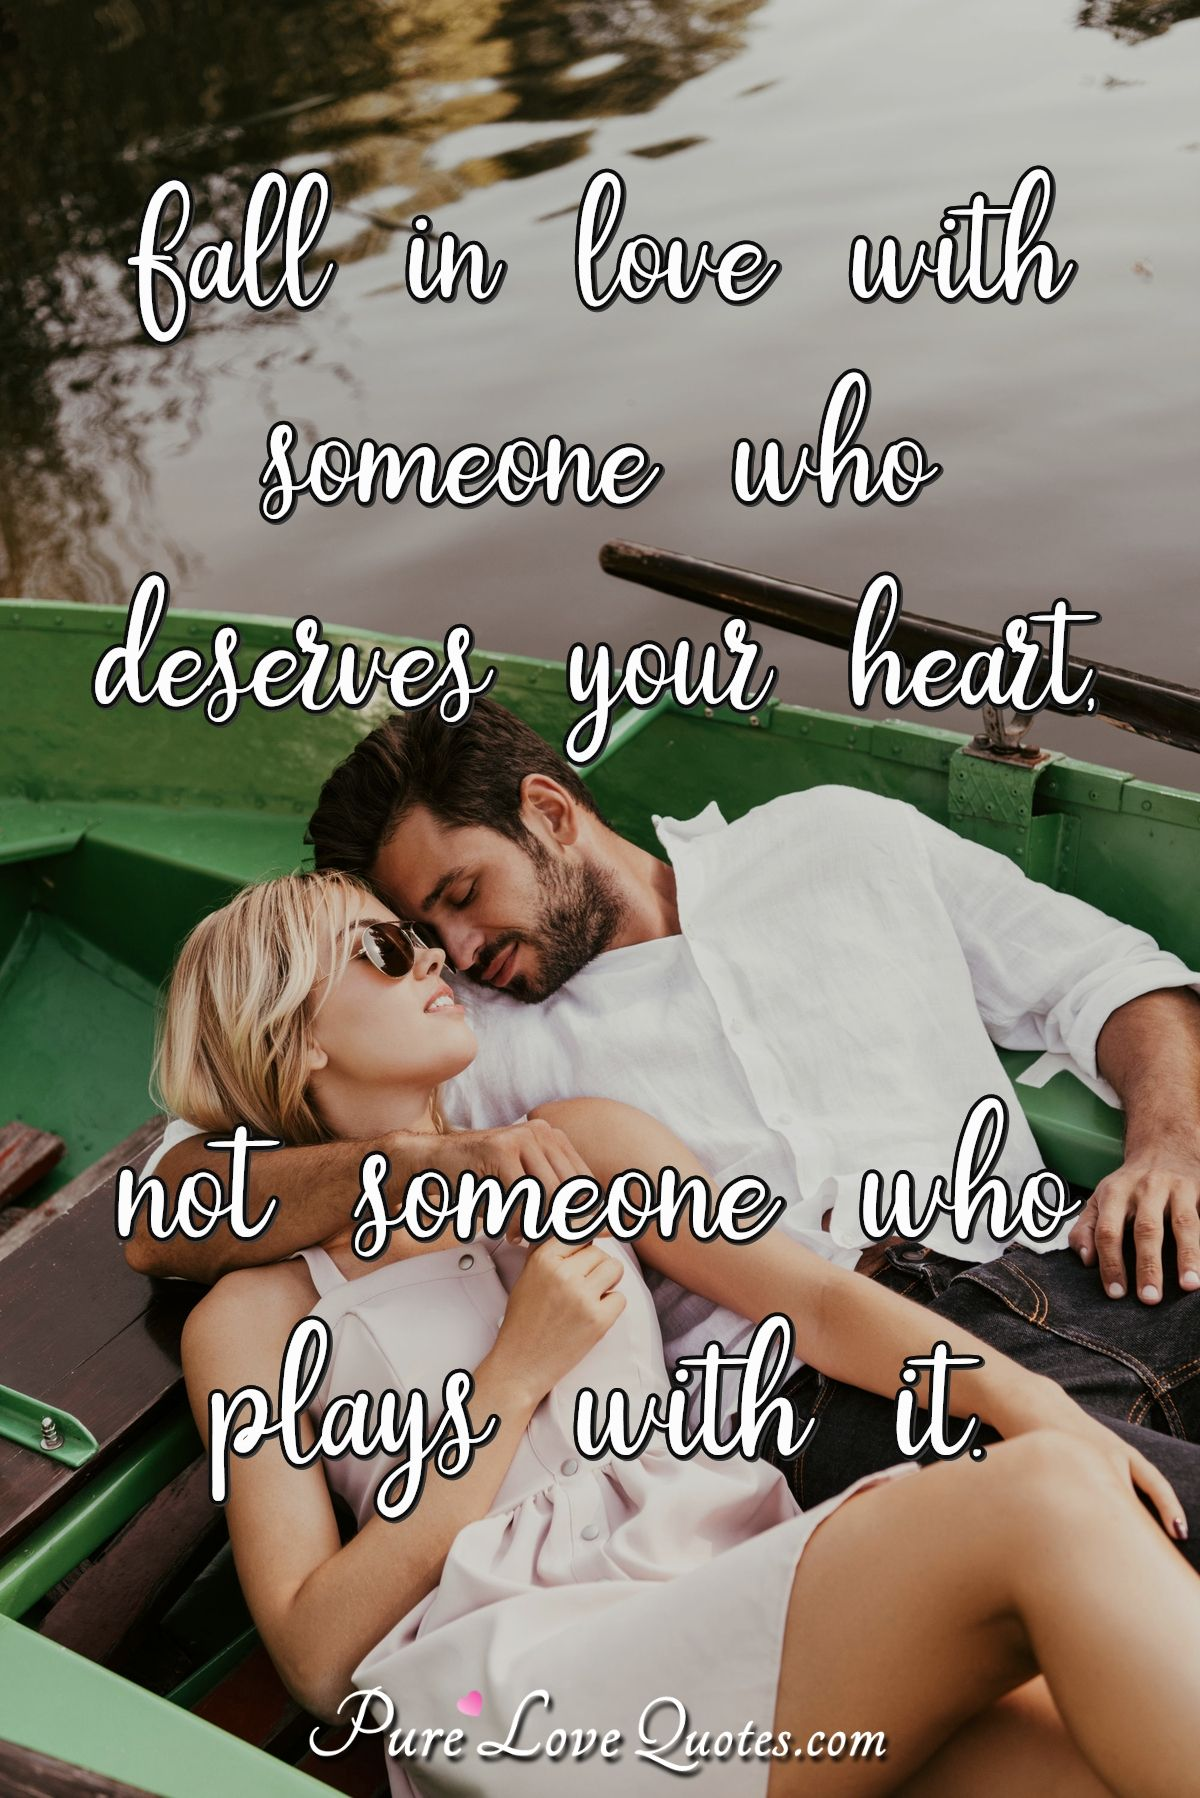 Fall in love with someone who deserves your heart, not someone who plays with it. - Anonymous